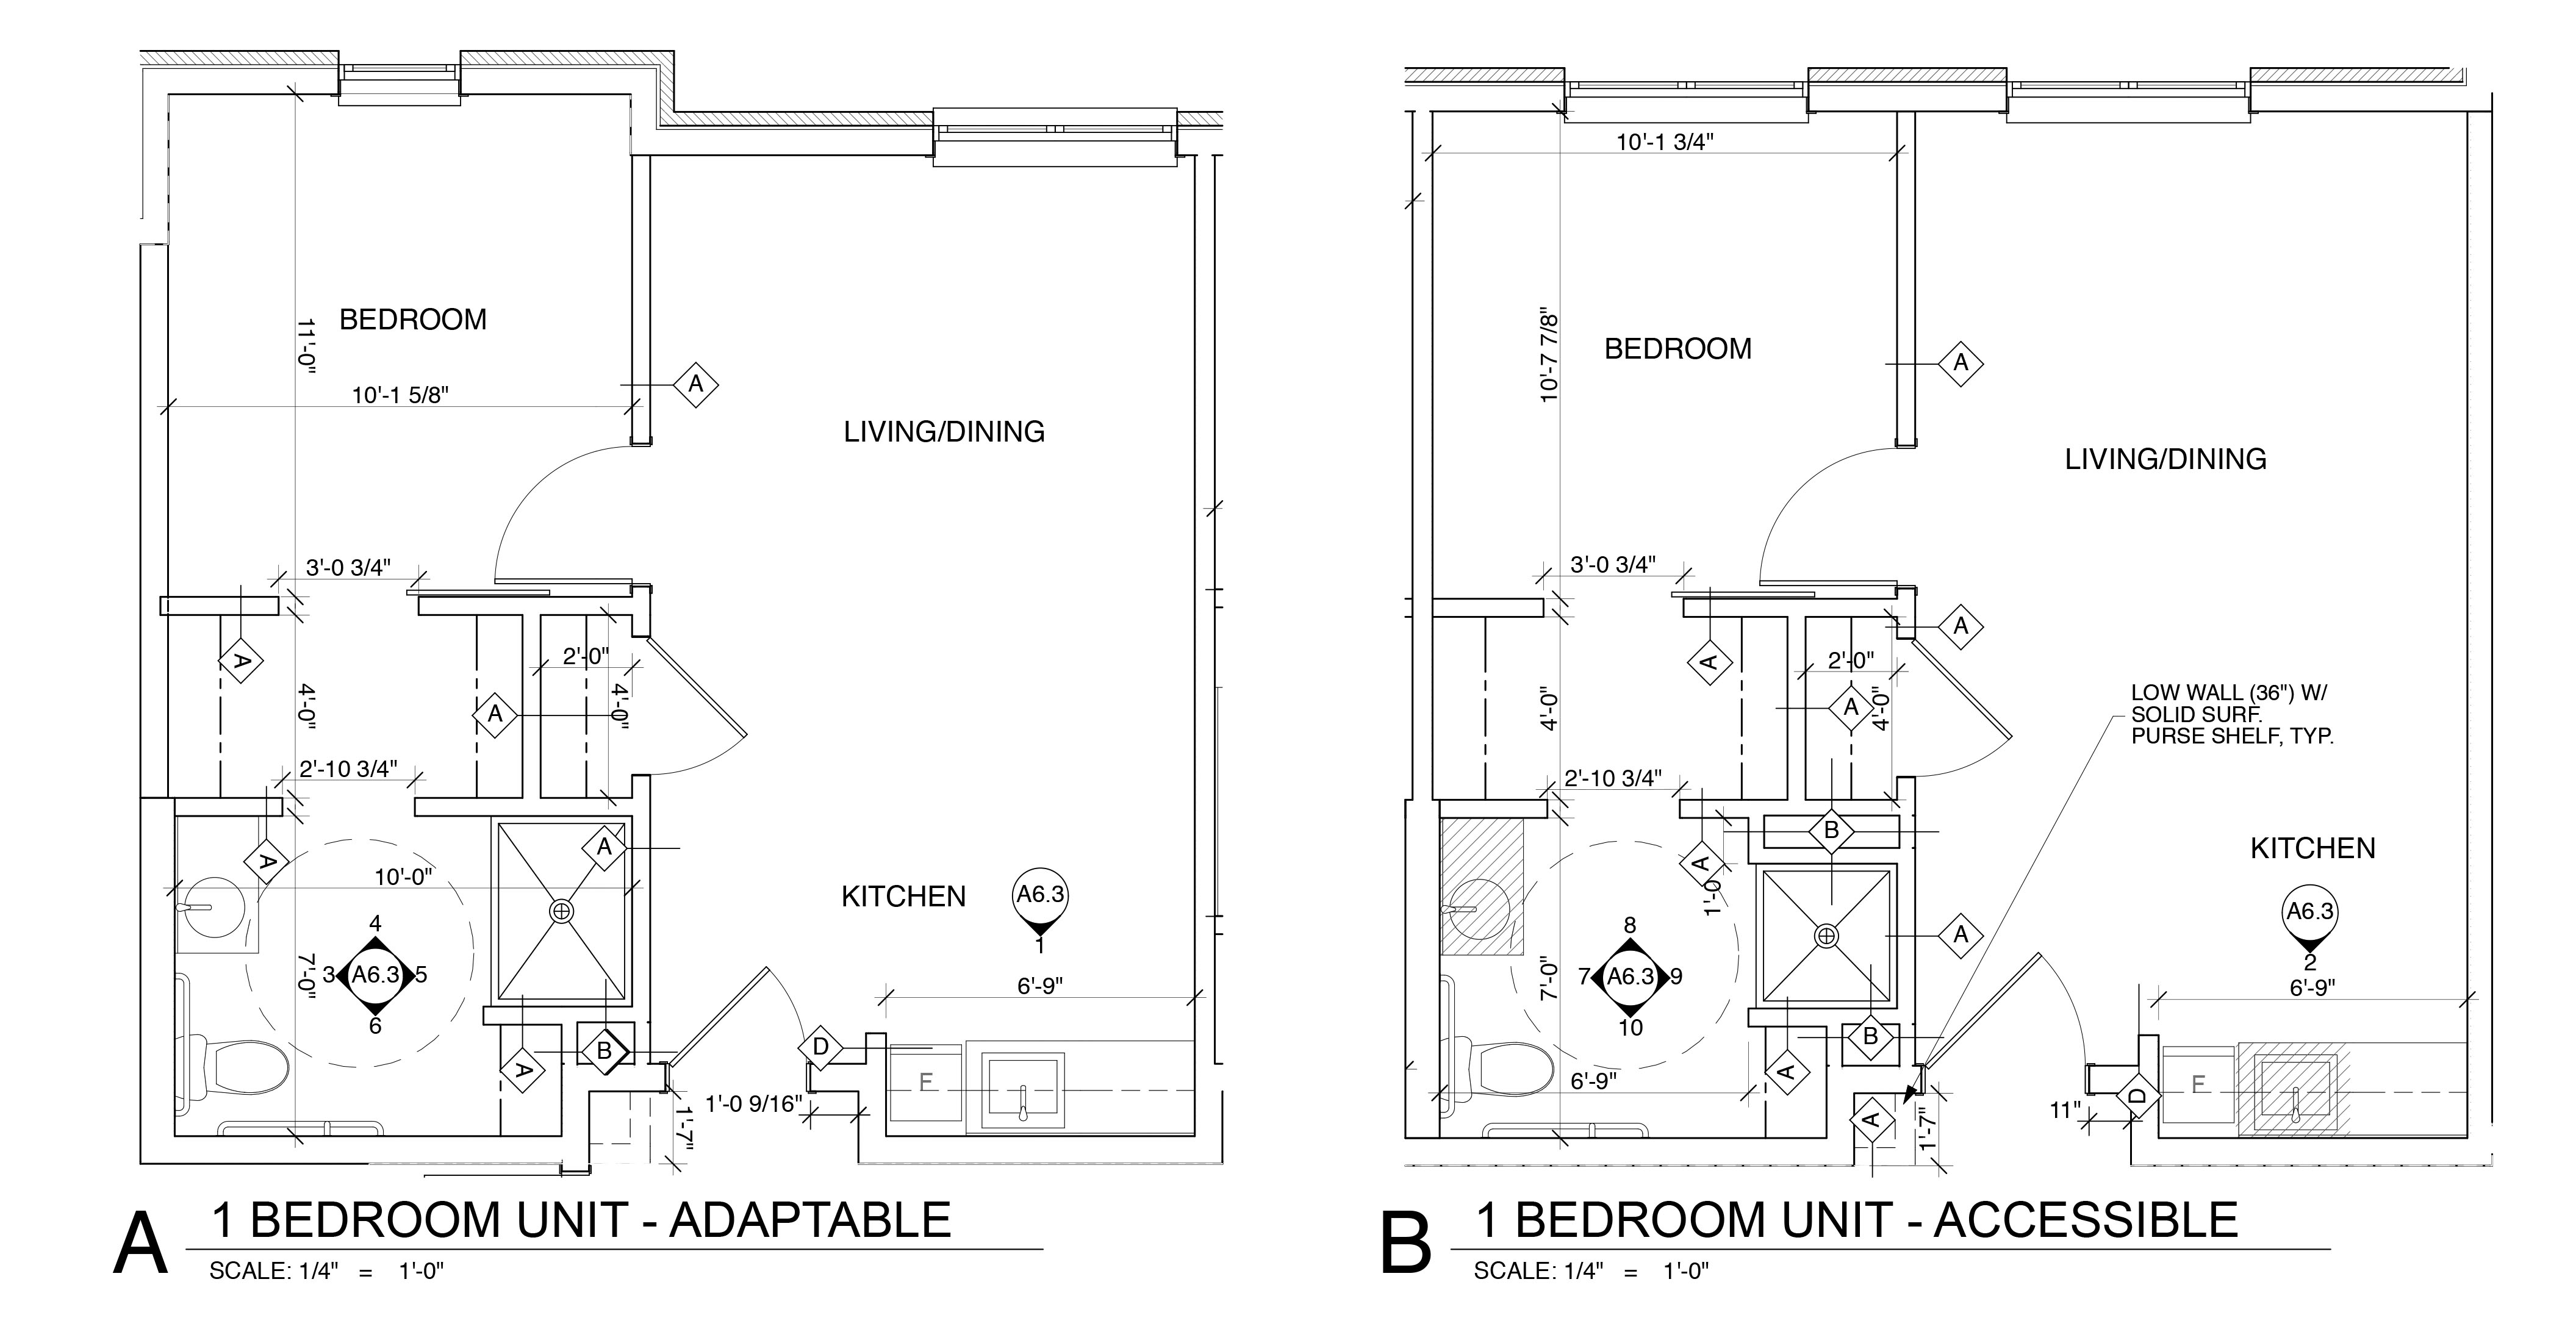 One Bedroom Unit - Adaptable & Accessible